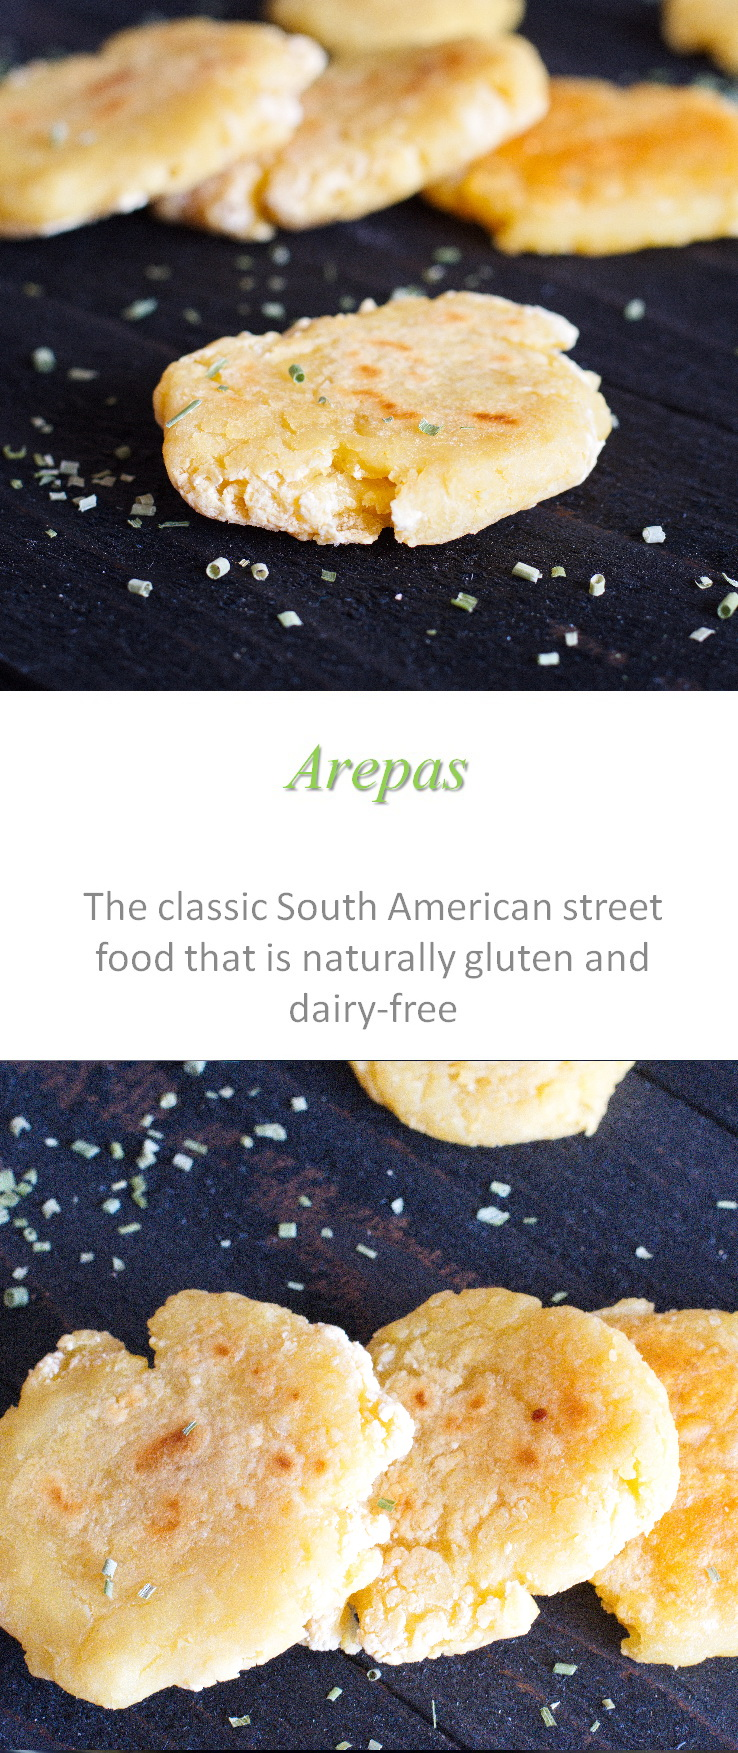 Arepas - naturally gluten and dairy-free - these South American staples are so versatile for any meal! #arepas